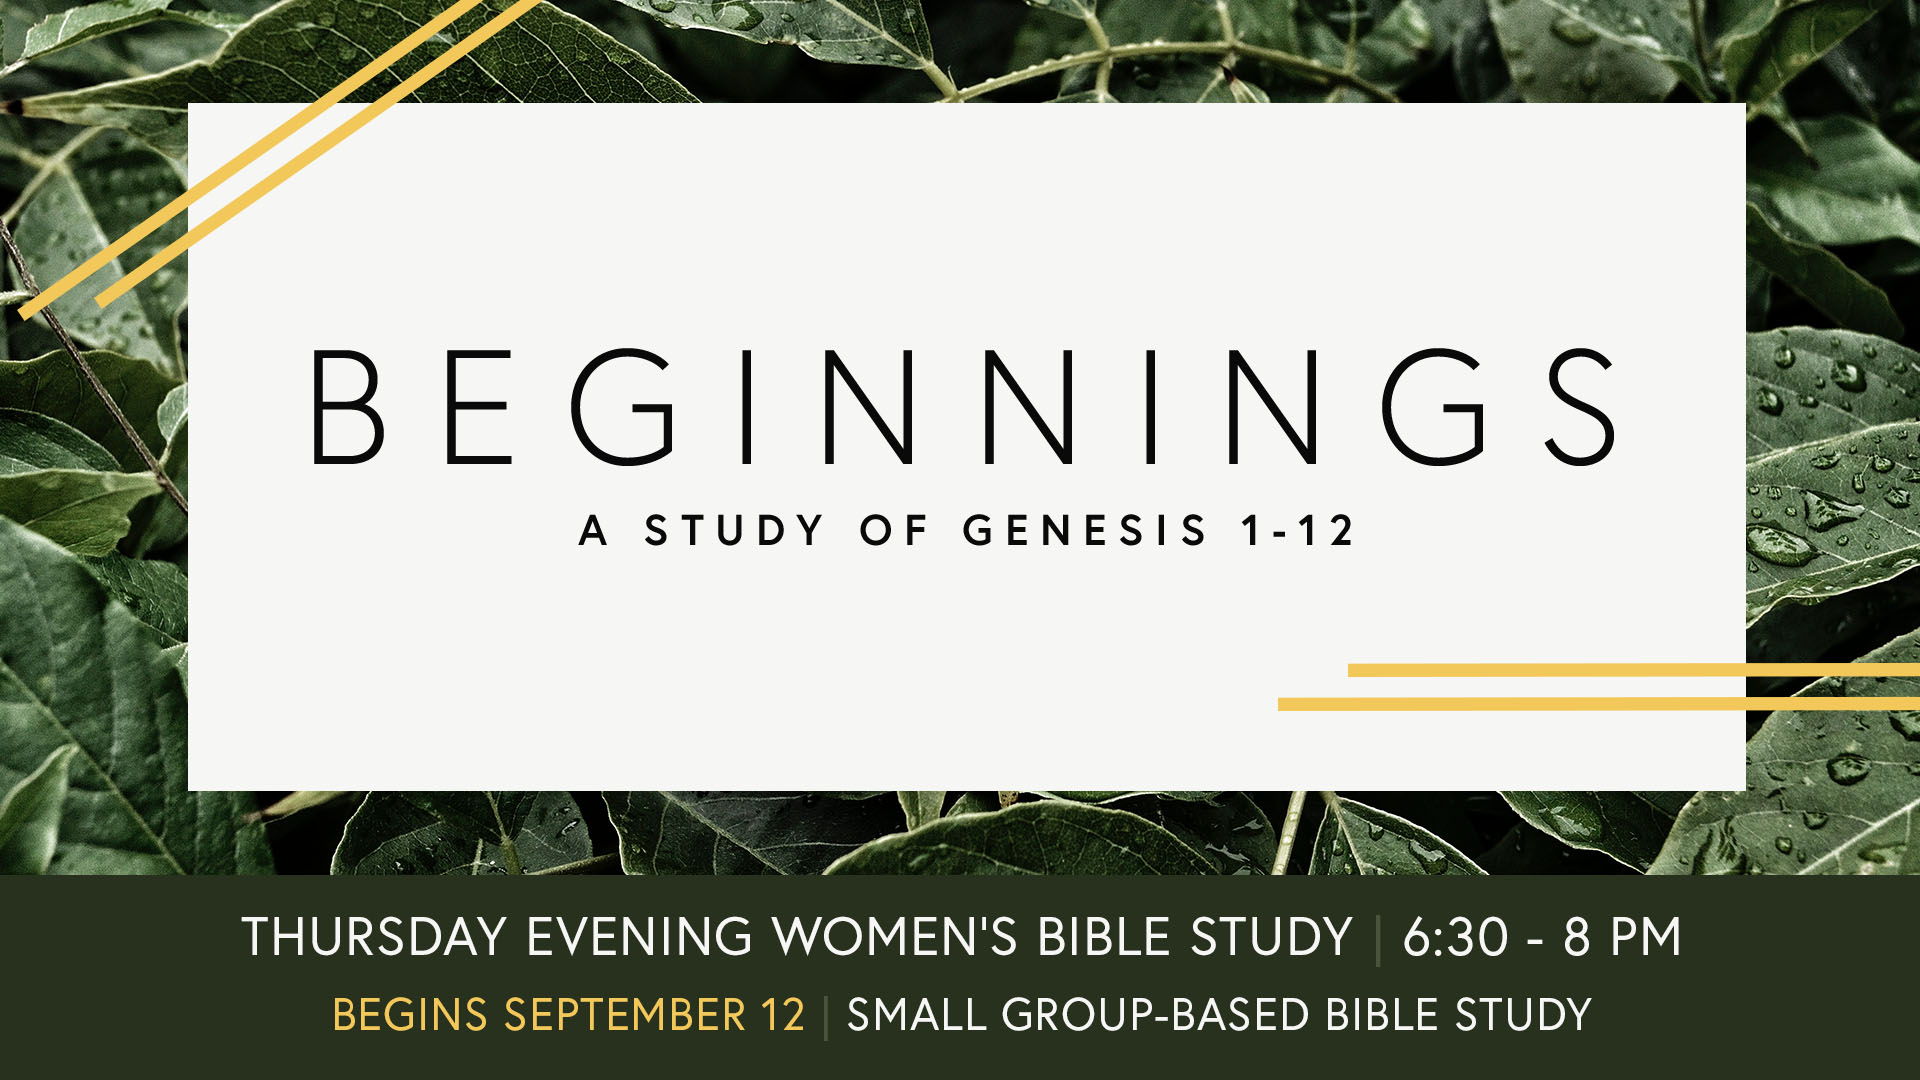 Beginnings Bible Study - Announcement Slide.jpg